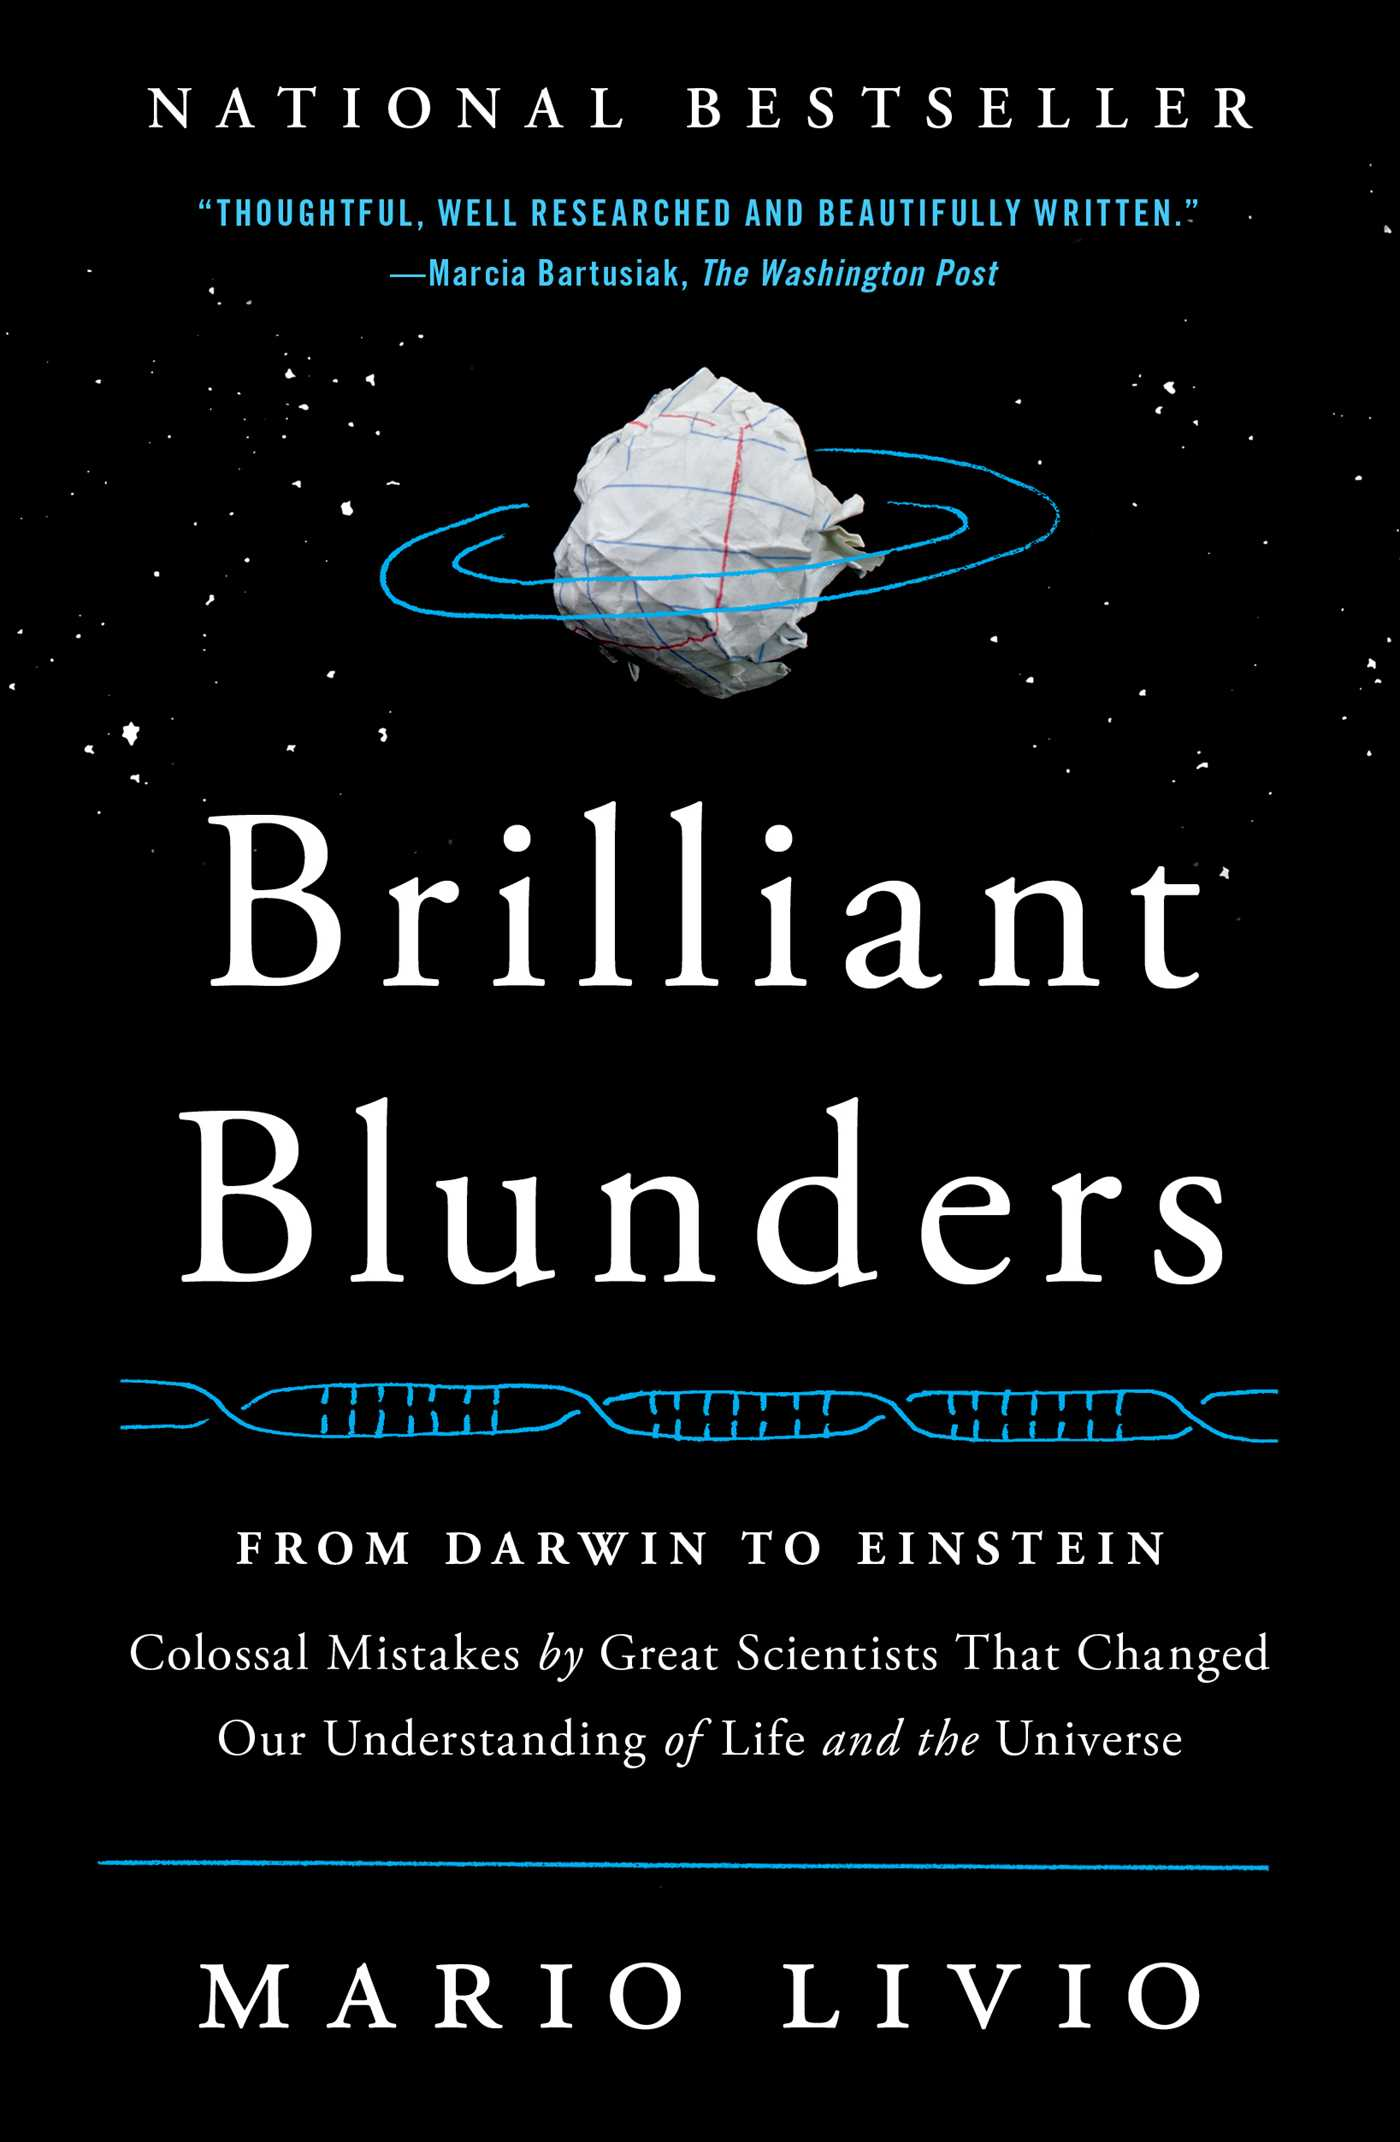 Brilliant-blunders-9781439192375_hr